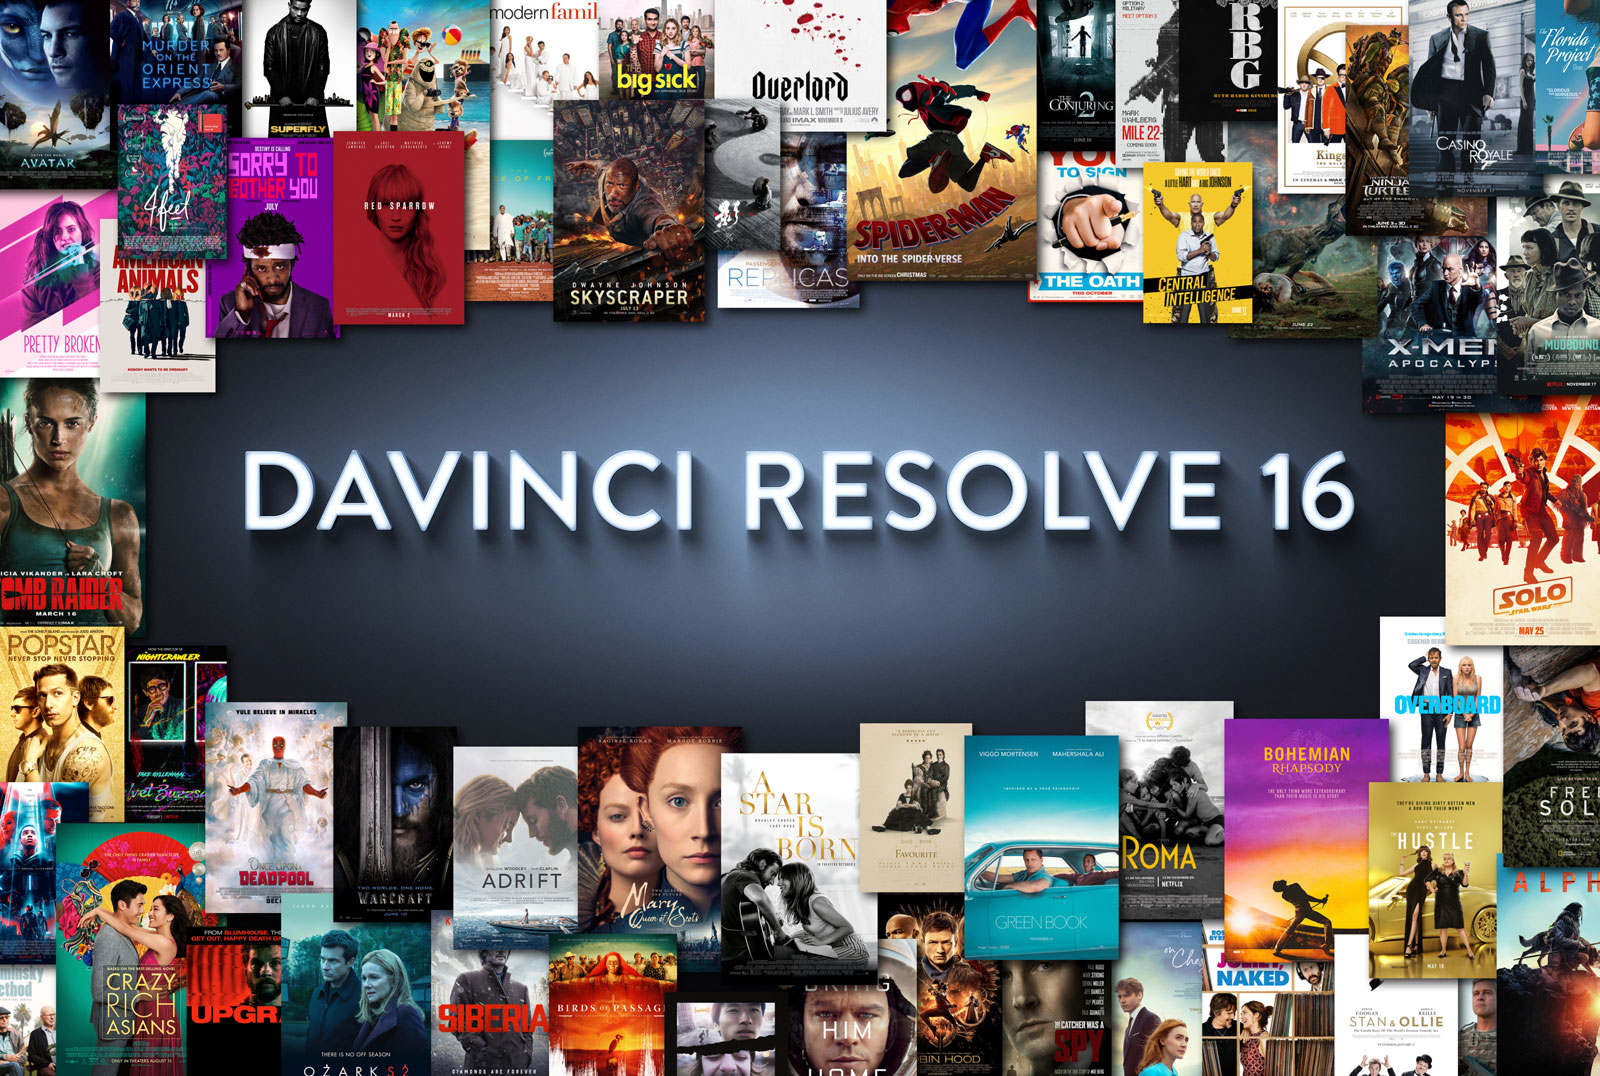 【A93】达芬奇调色软件DaVinci Resolve Studio 16.0b1 Win 中文/英文破解版